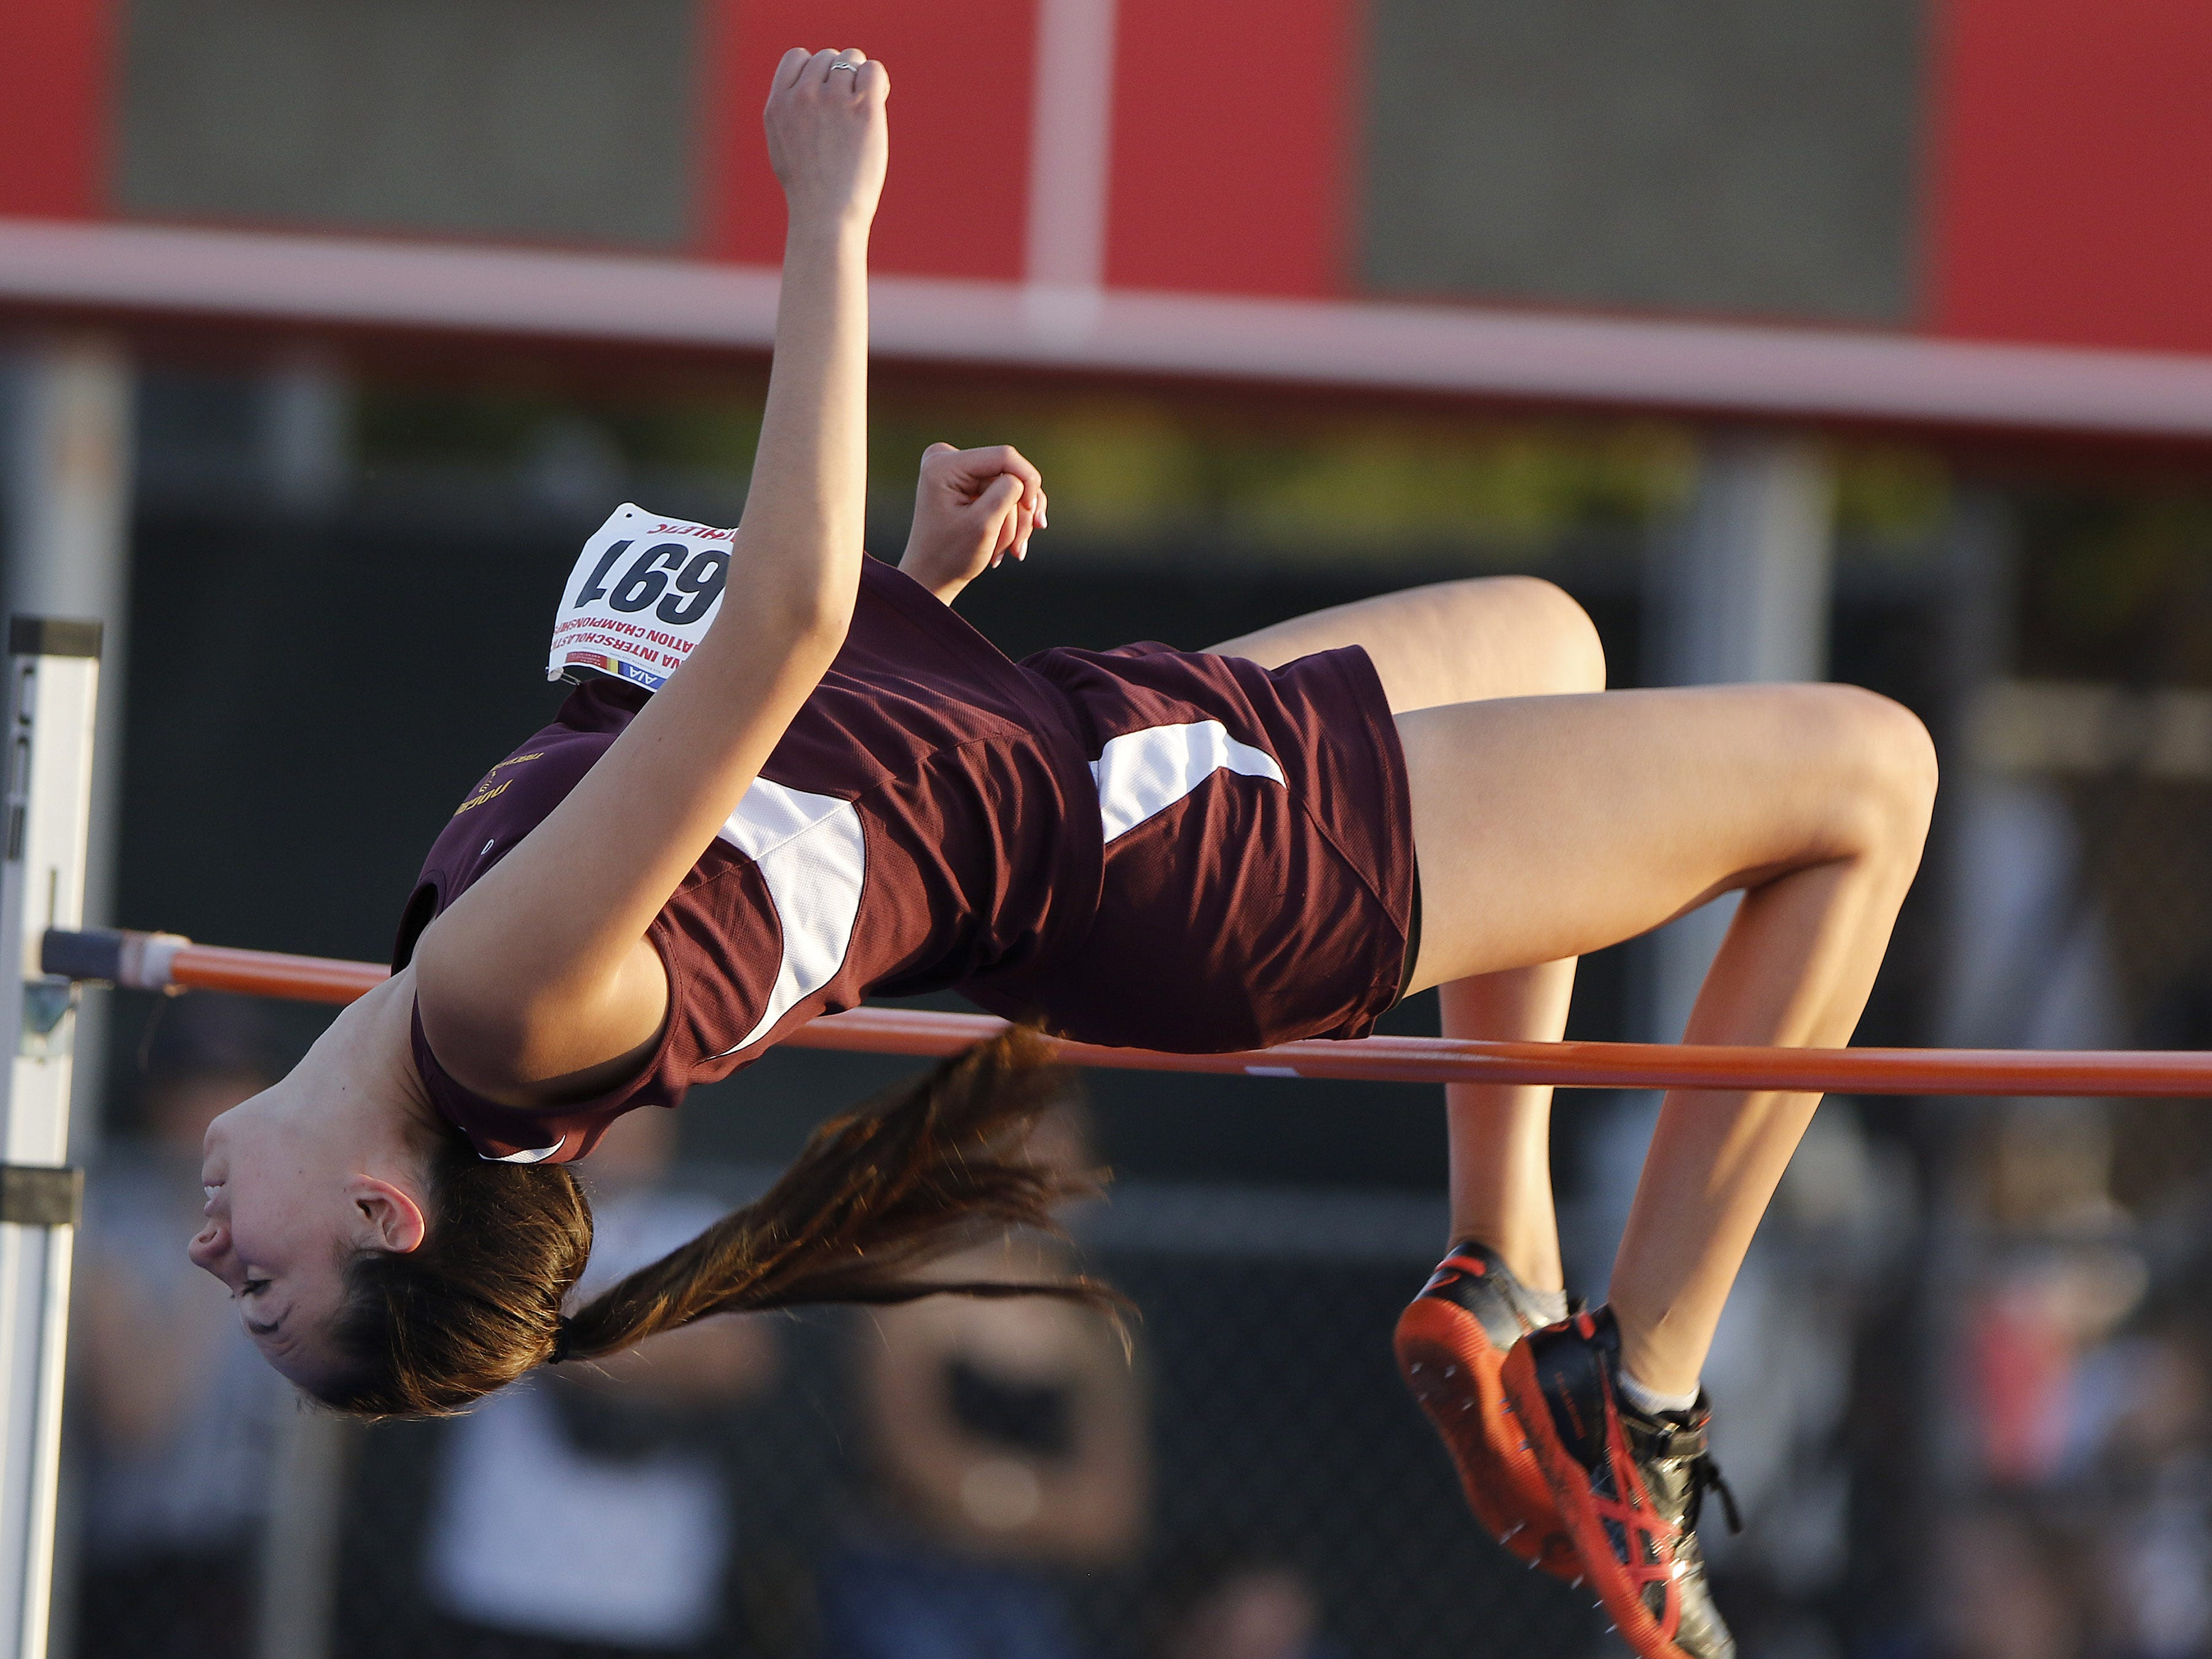 Nogale's Sabina Romero clears 5'4 and goes on to win the Division II high jump championship during the 2019 Arizona State Track and Field Championship at Mesa Community College in Mesa, Arizona, May 04, 2019.